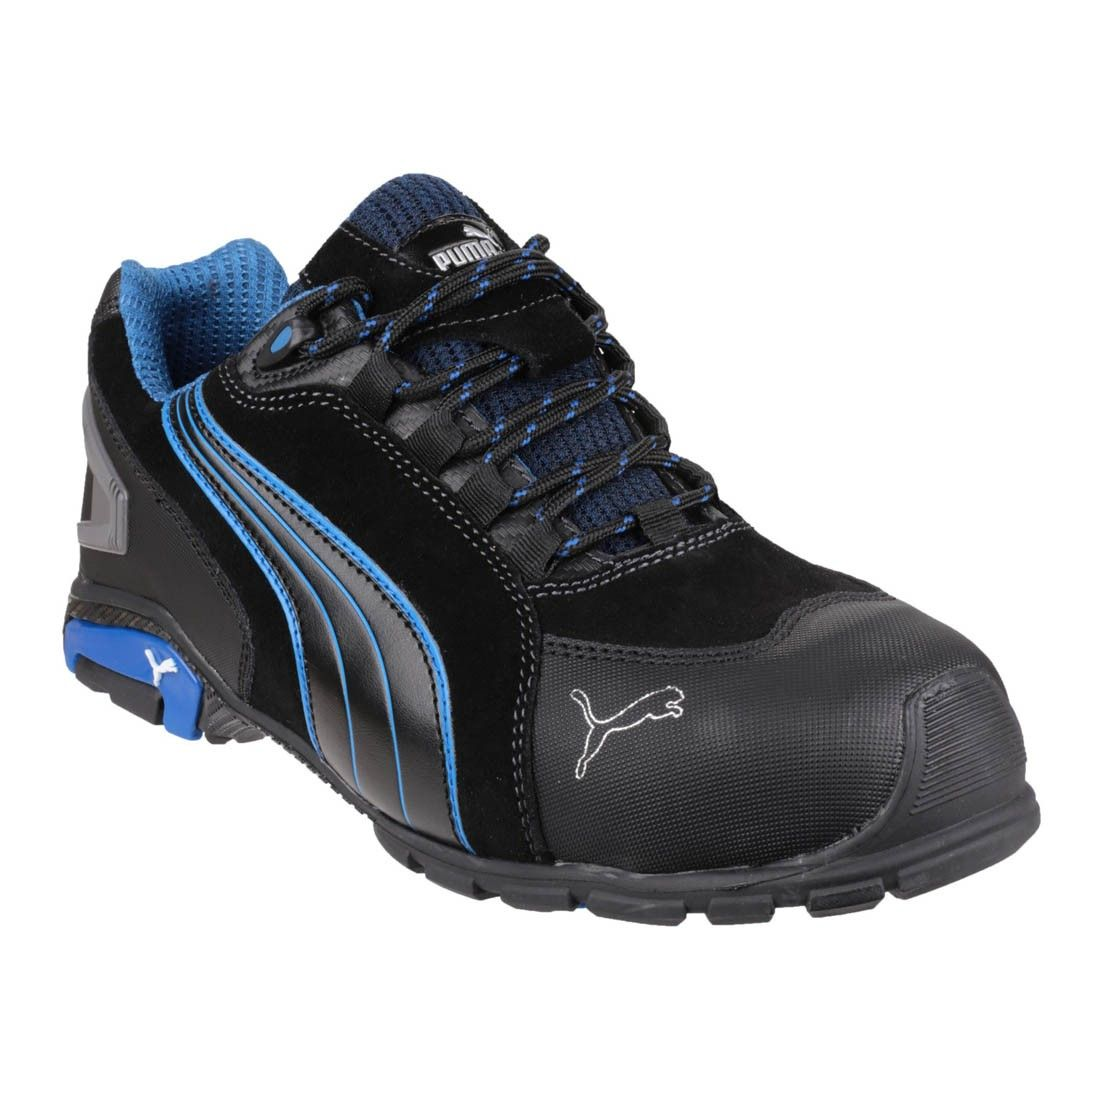 9032b0a21d Puma Safety Shoes Rio Low Modern Sporty Black Mens Safety Trainers ...